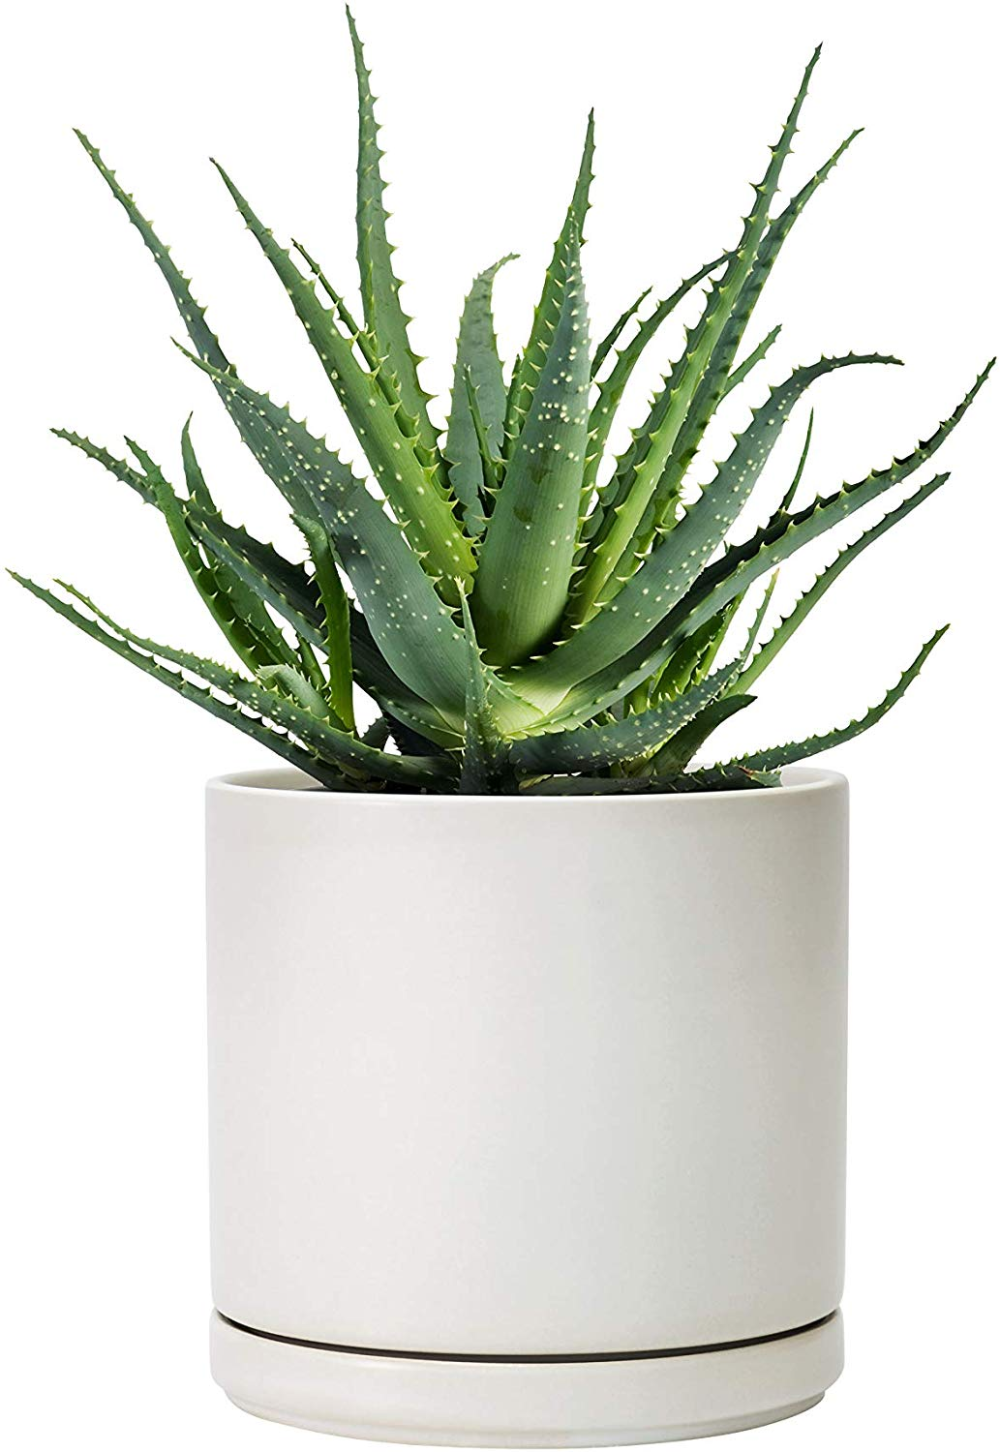 Amazon Com Set Of 3 6 Inch 8 Inch 10 Inch Matte White Grey Ceramic Planter Pot With Saucer Ceramic Ceramic Planter Pots Ceramic Planters Planter Pots